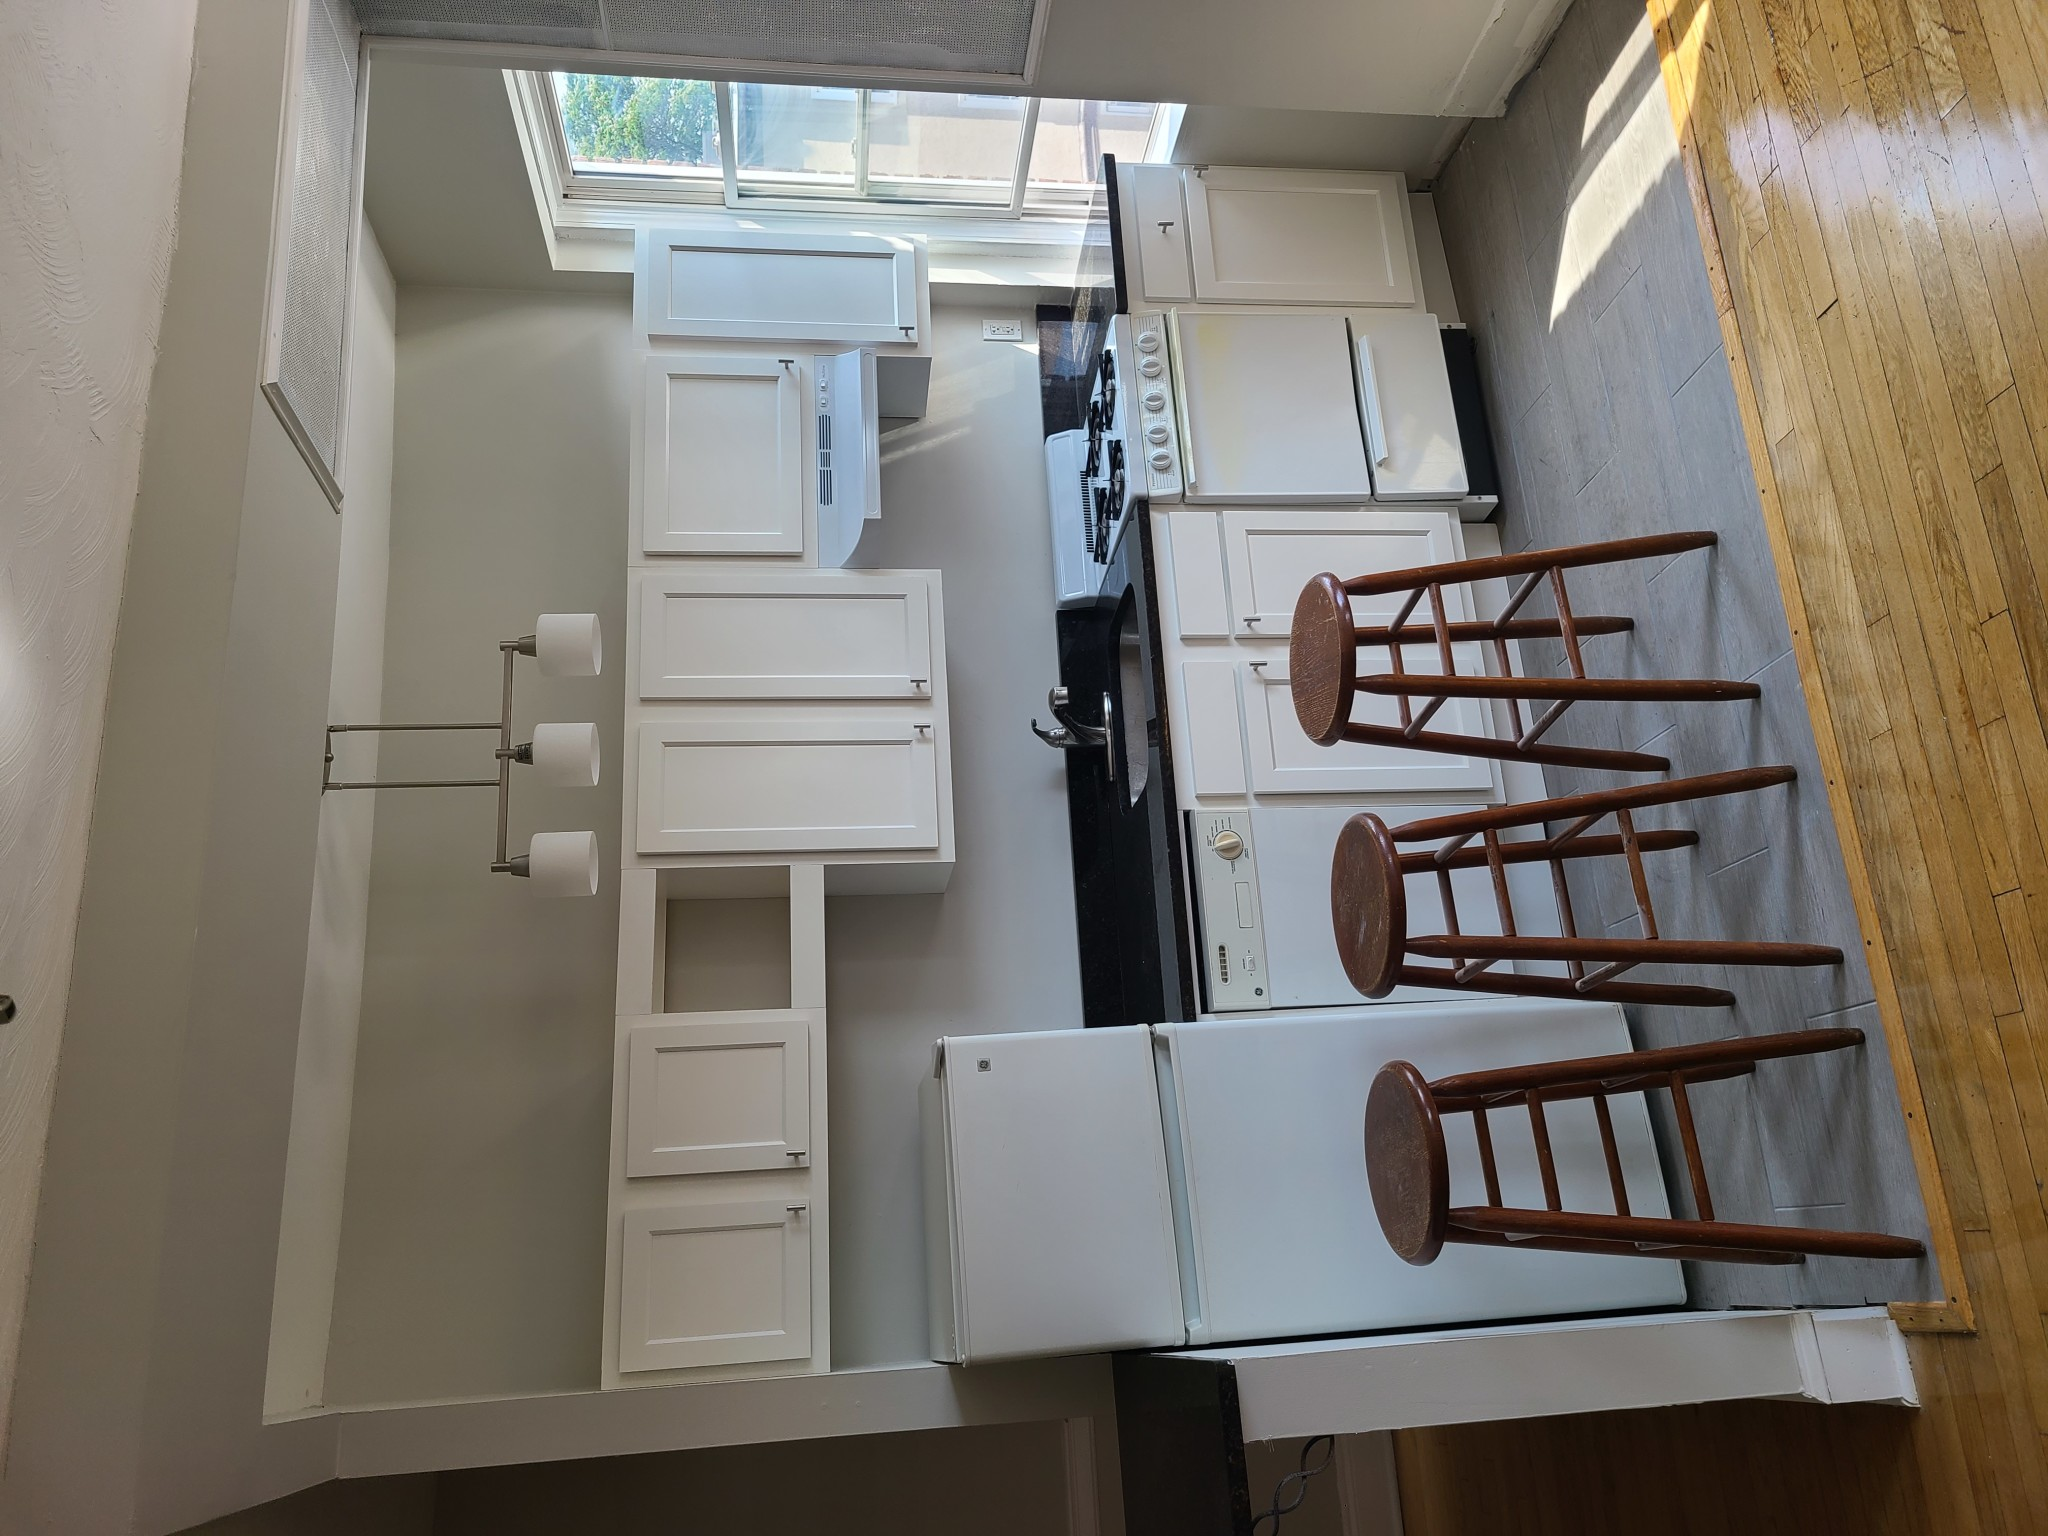 Studio, 1 Bath apartment in Boston, Allston for $1,650